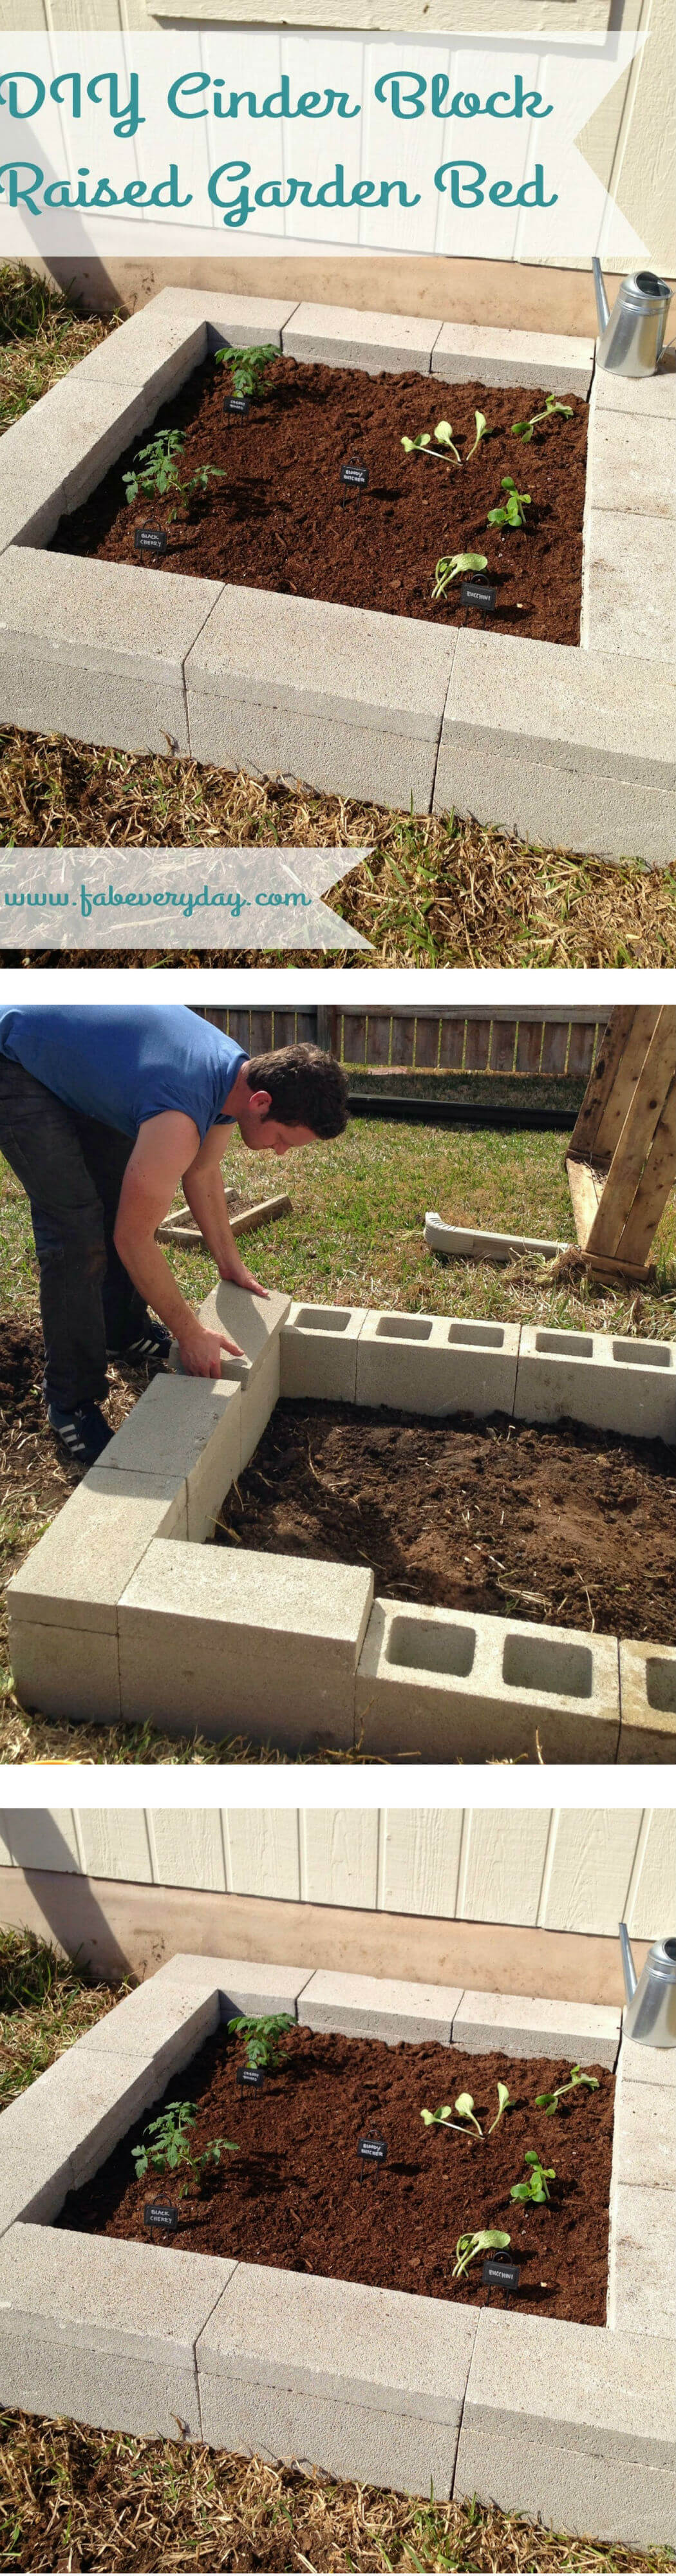 DIY Cinder Block Raised Garden Bed | How to Build a Raised Vegetable Garden Bed | 39+ Simple & Cheap Raised Vegetable Garden Bed Ideas - farmfoodfamily.com